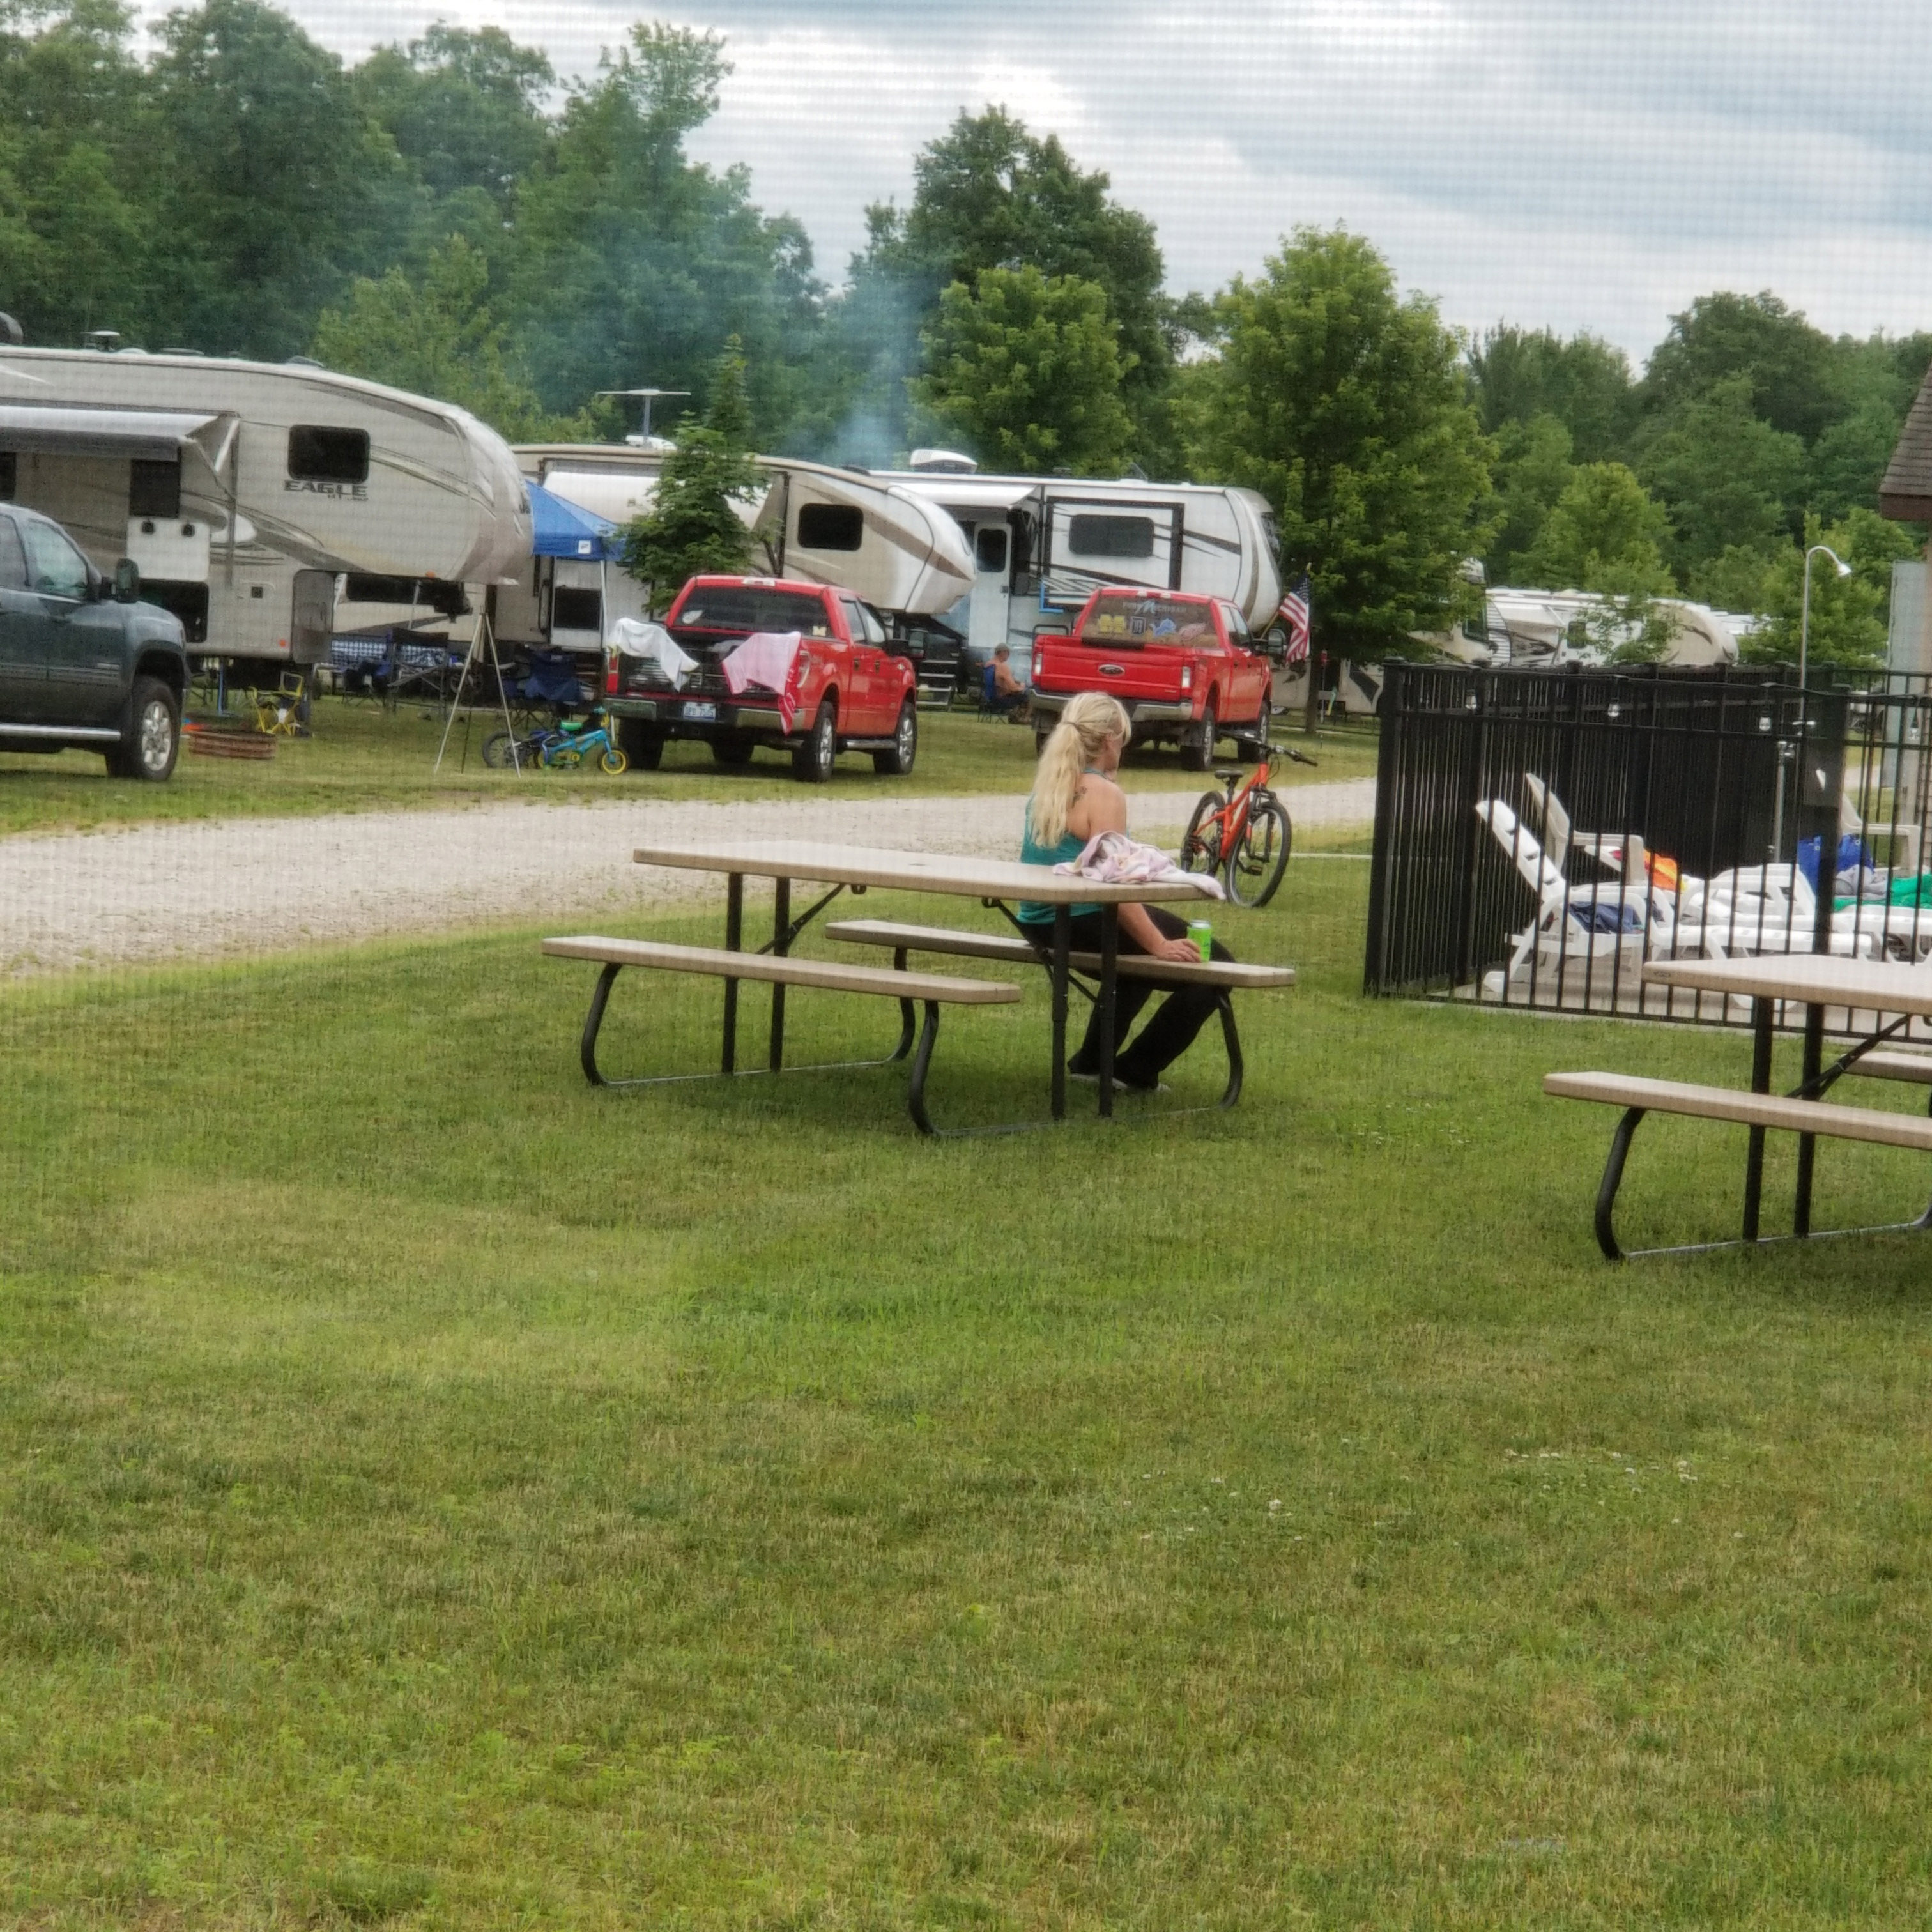 Welcome to Irons RV Park and Campground - Irons RV Park and